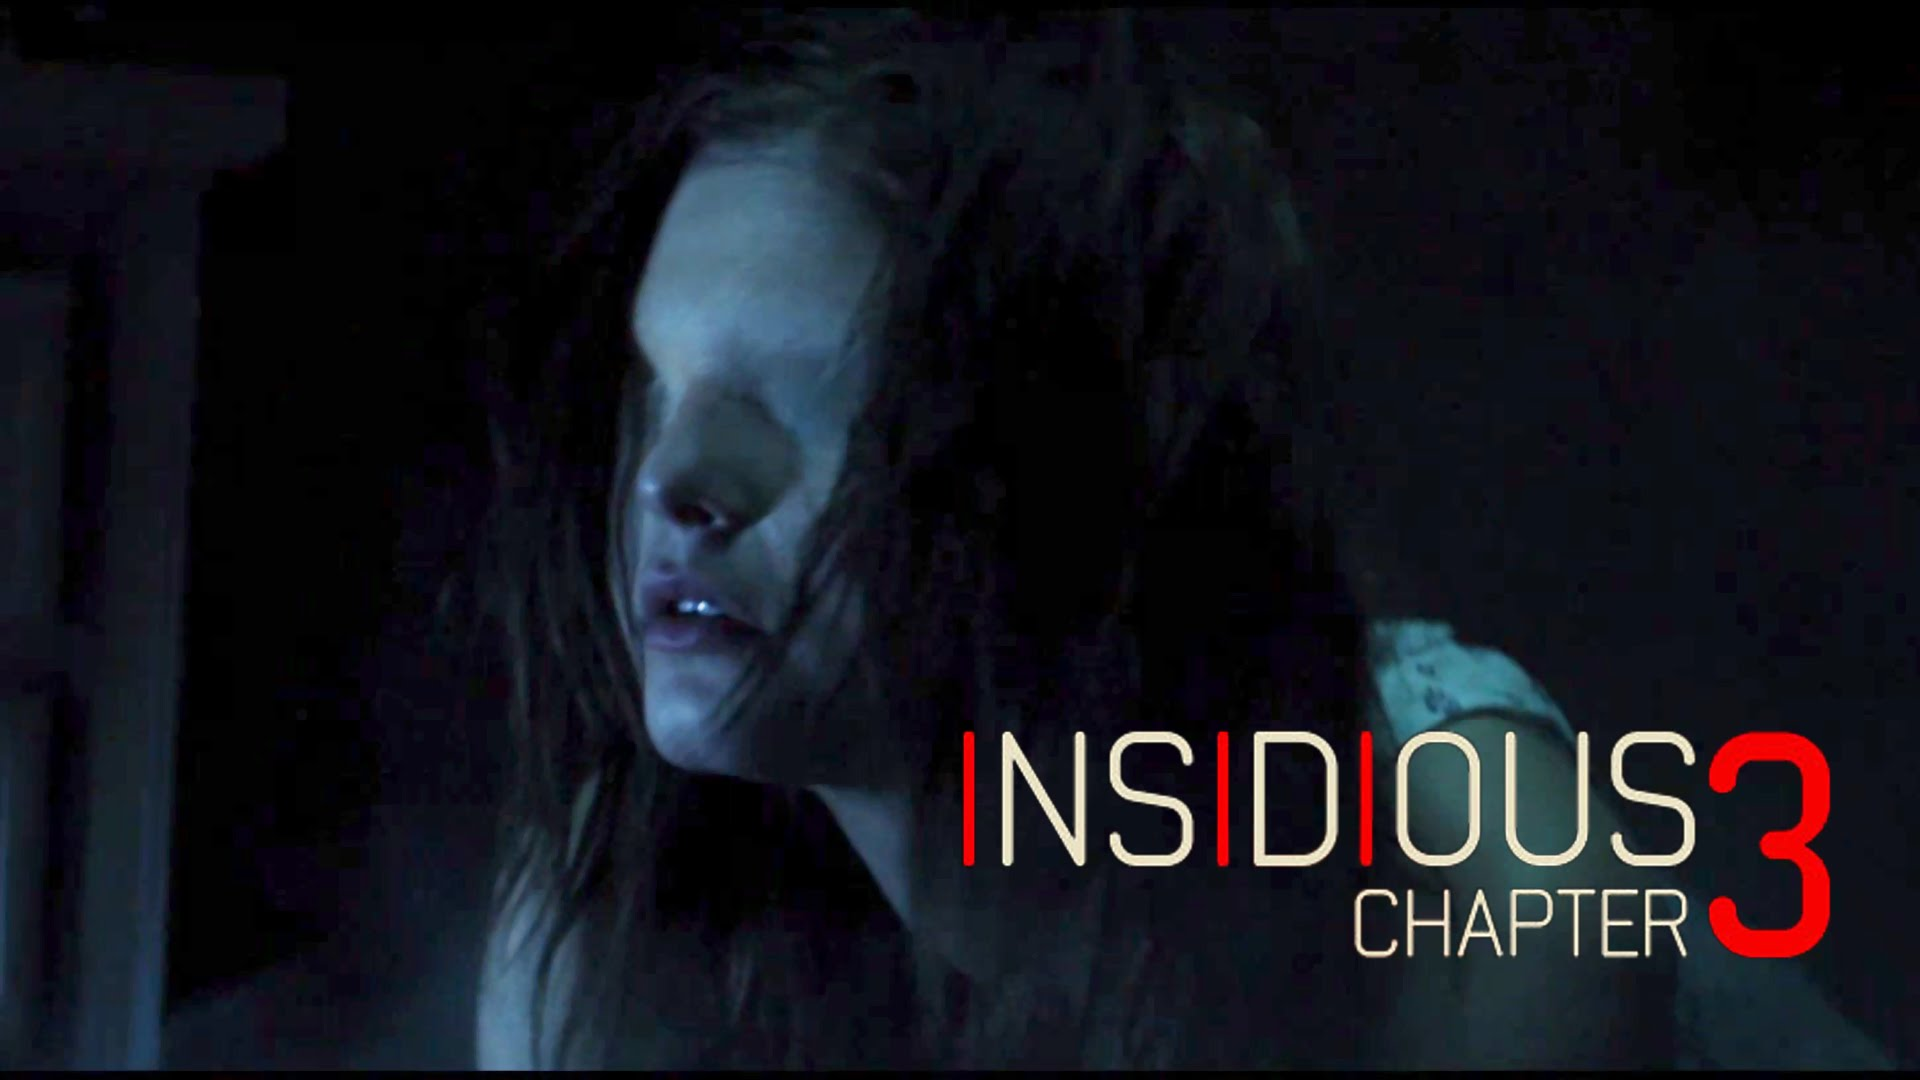 Chapter 3 Wallpaper Insidious 3 1411683 Hd Wallpaper Backgrounds Download